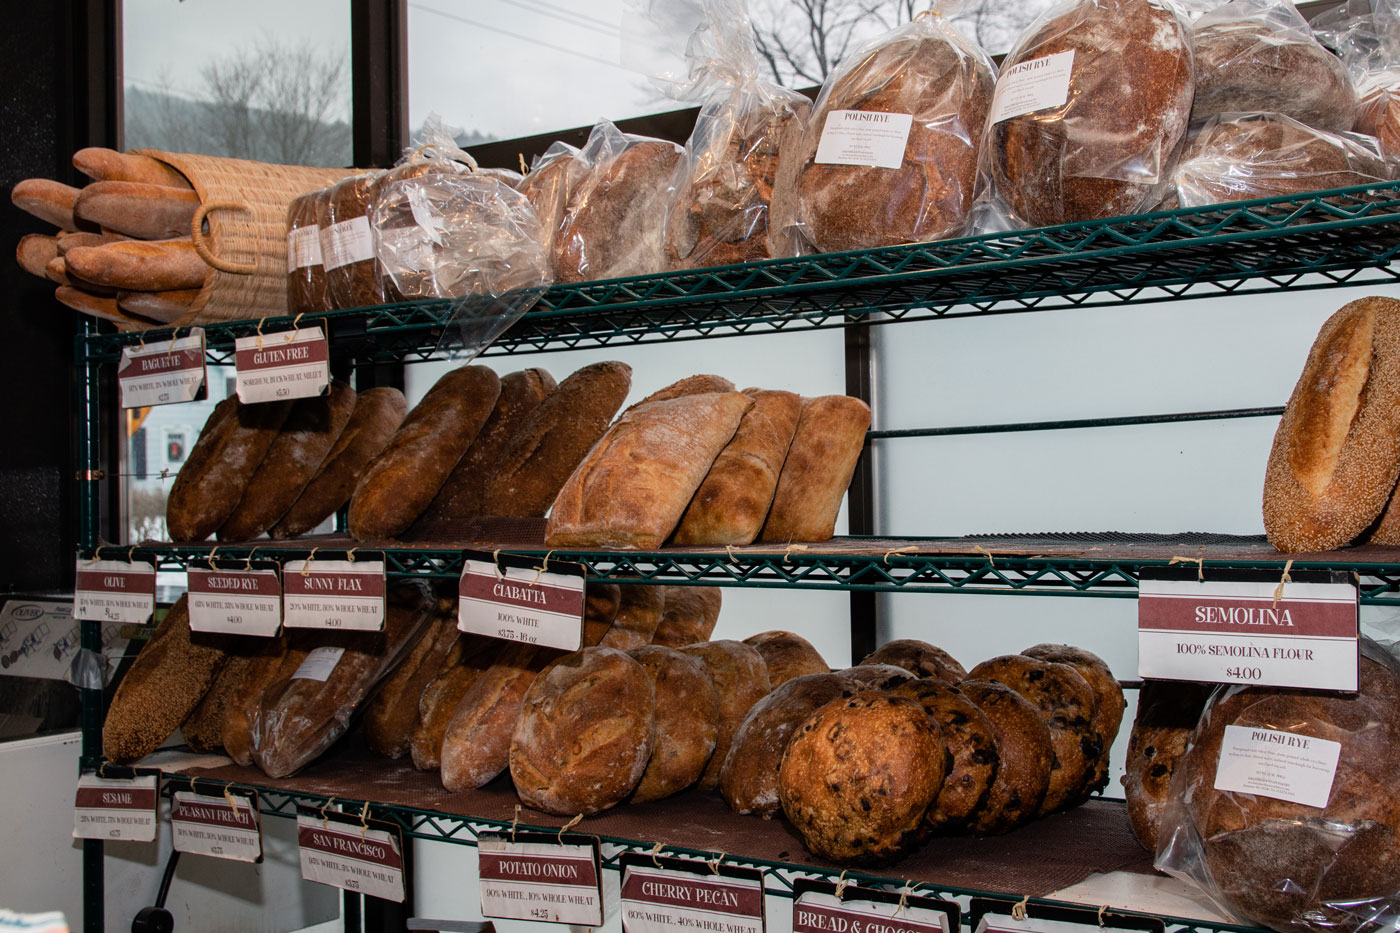 A variety of loaves of bread on display.